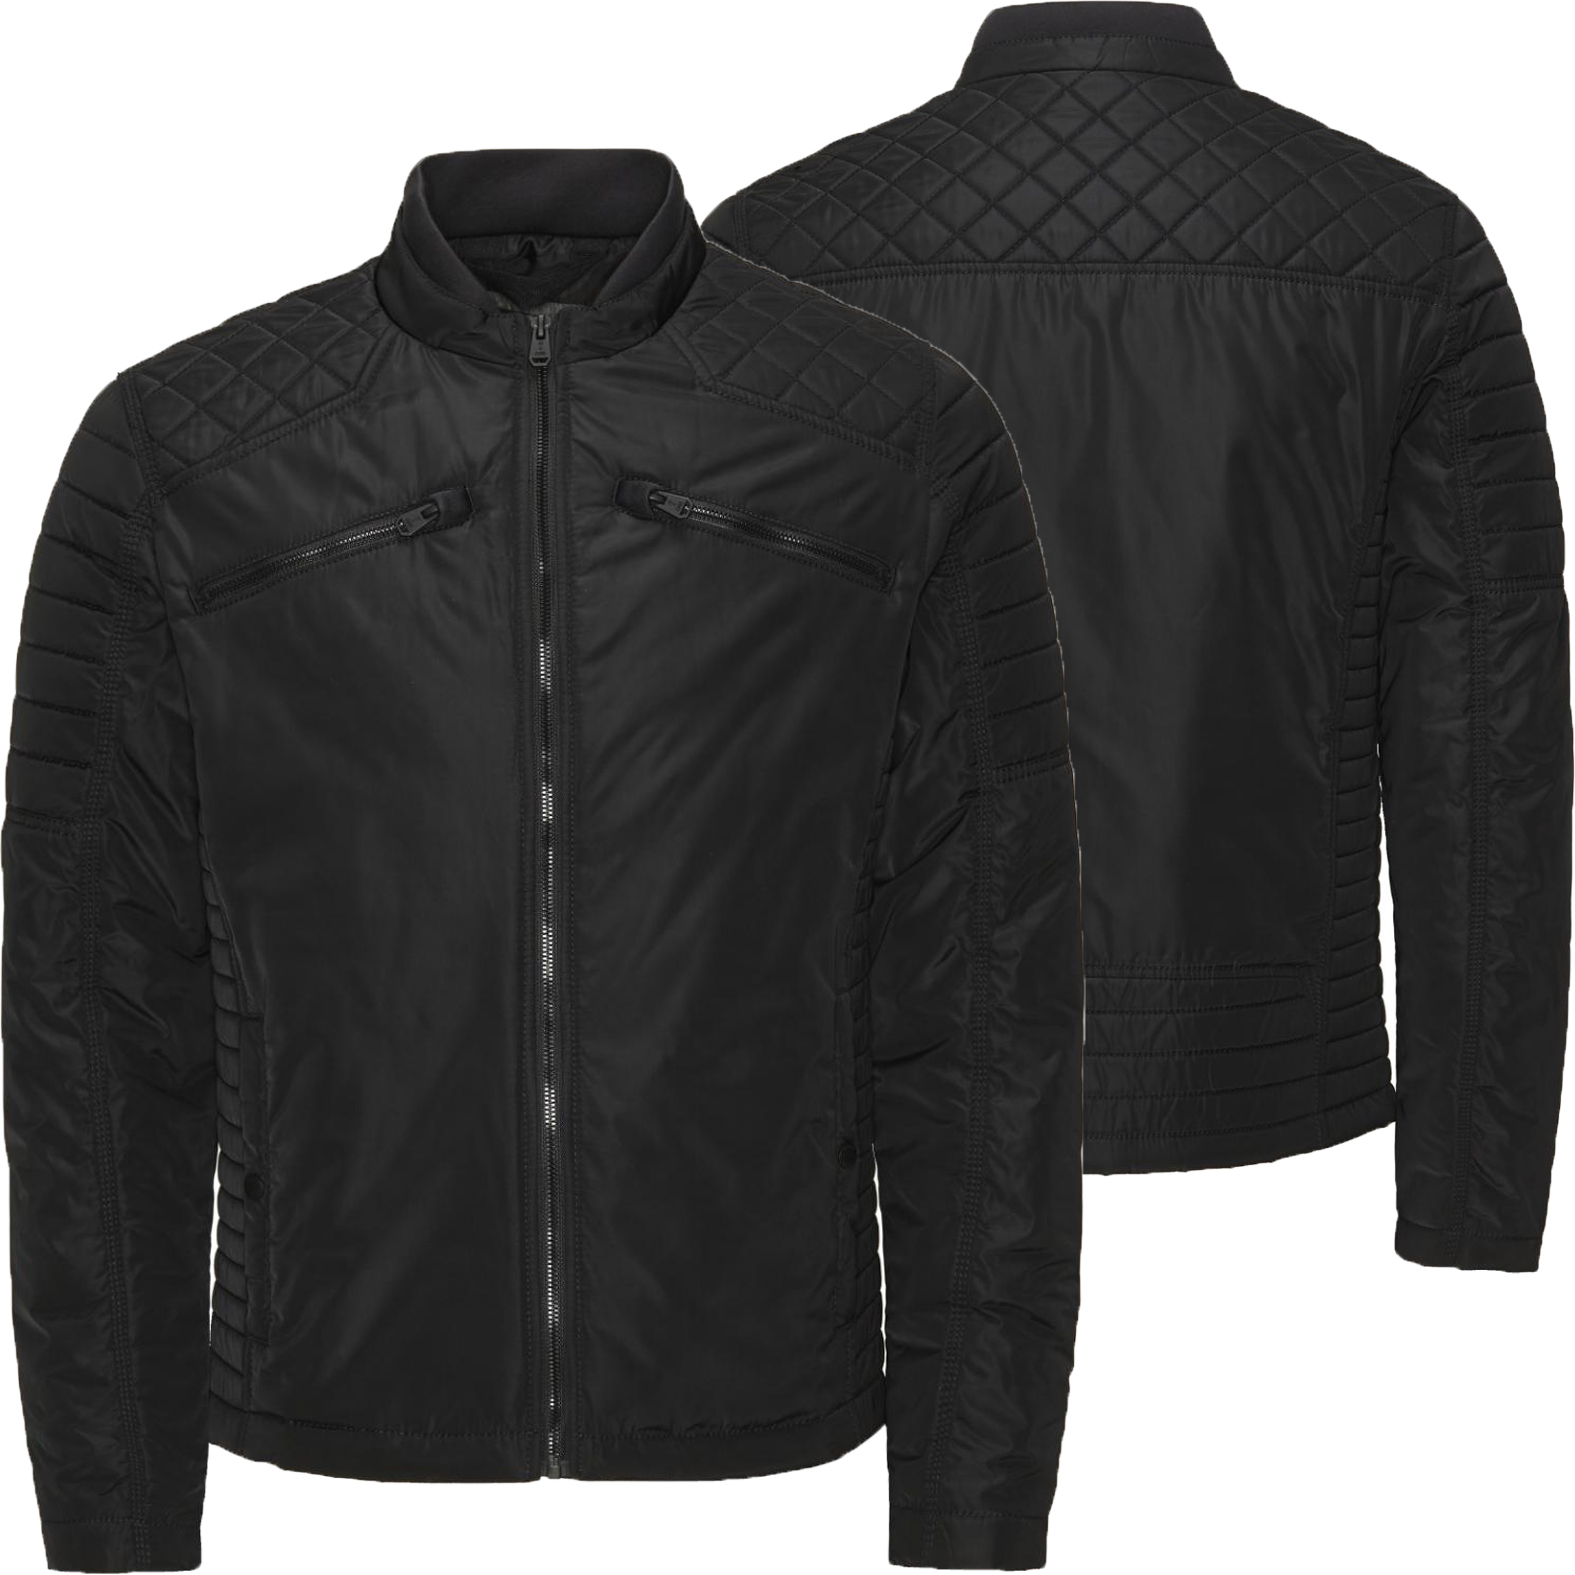 jack jones herren jacke jjco eli light biker s m l xl xxl jacket schwarz neu ebay. Black Bedroom Furniture Sets. Home Design Ideas